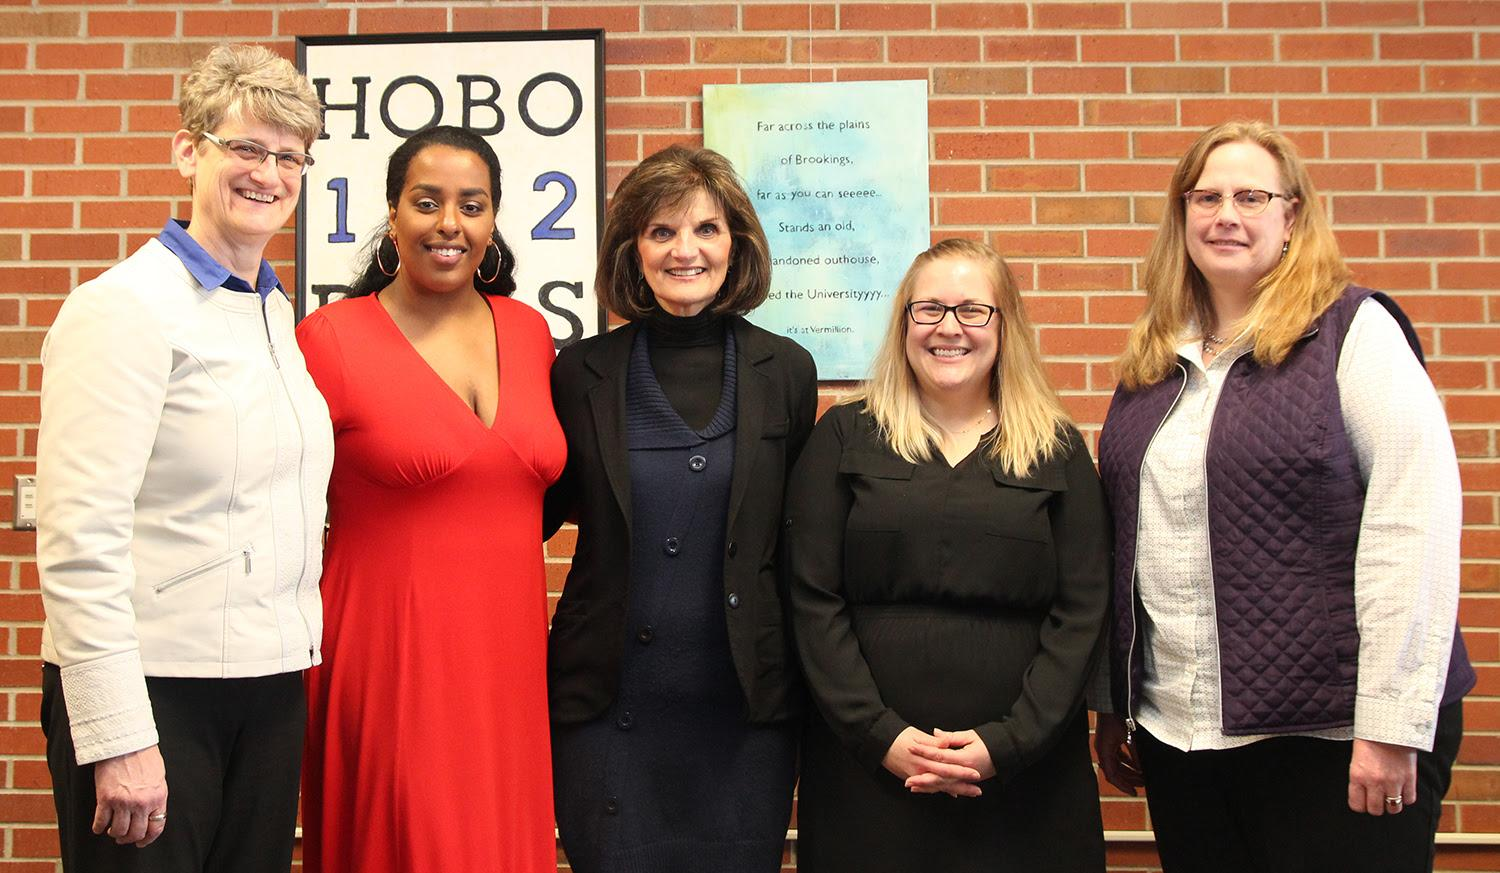 From left are the 2018 April Brooks Woman of Distinction Award recipients: Jane Mort, Semehar Ghebrekidan, Janet Johnson, Lacey McCormack and Michelle Leeds.